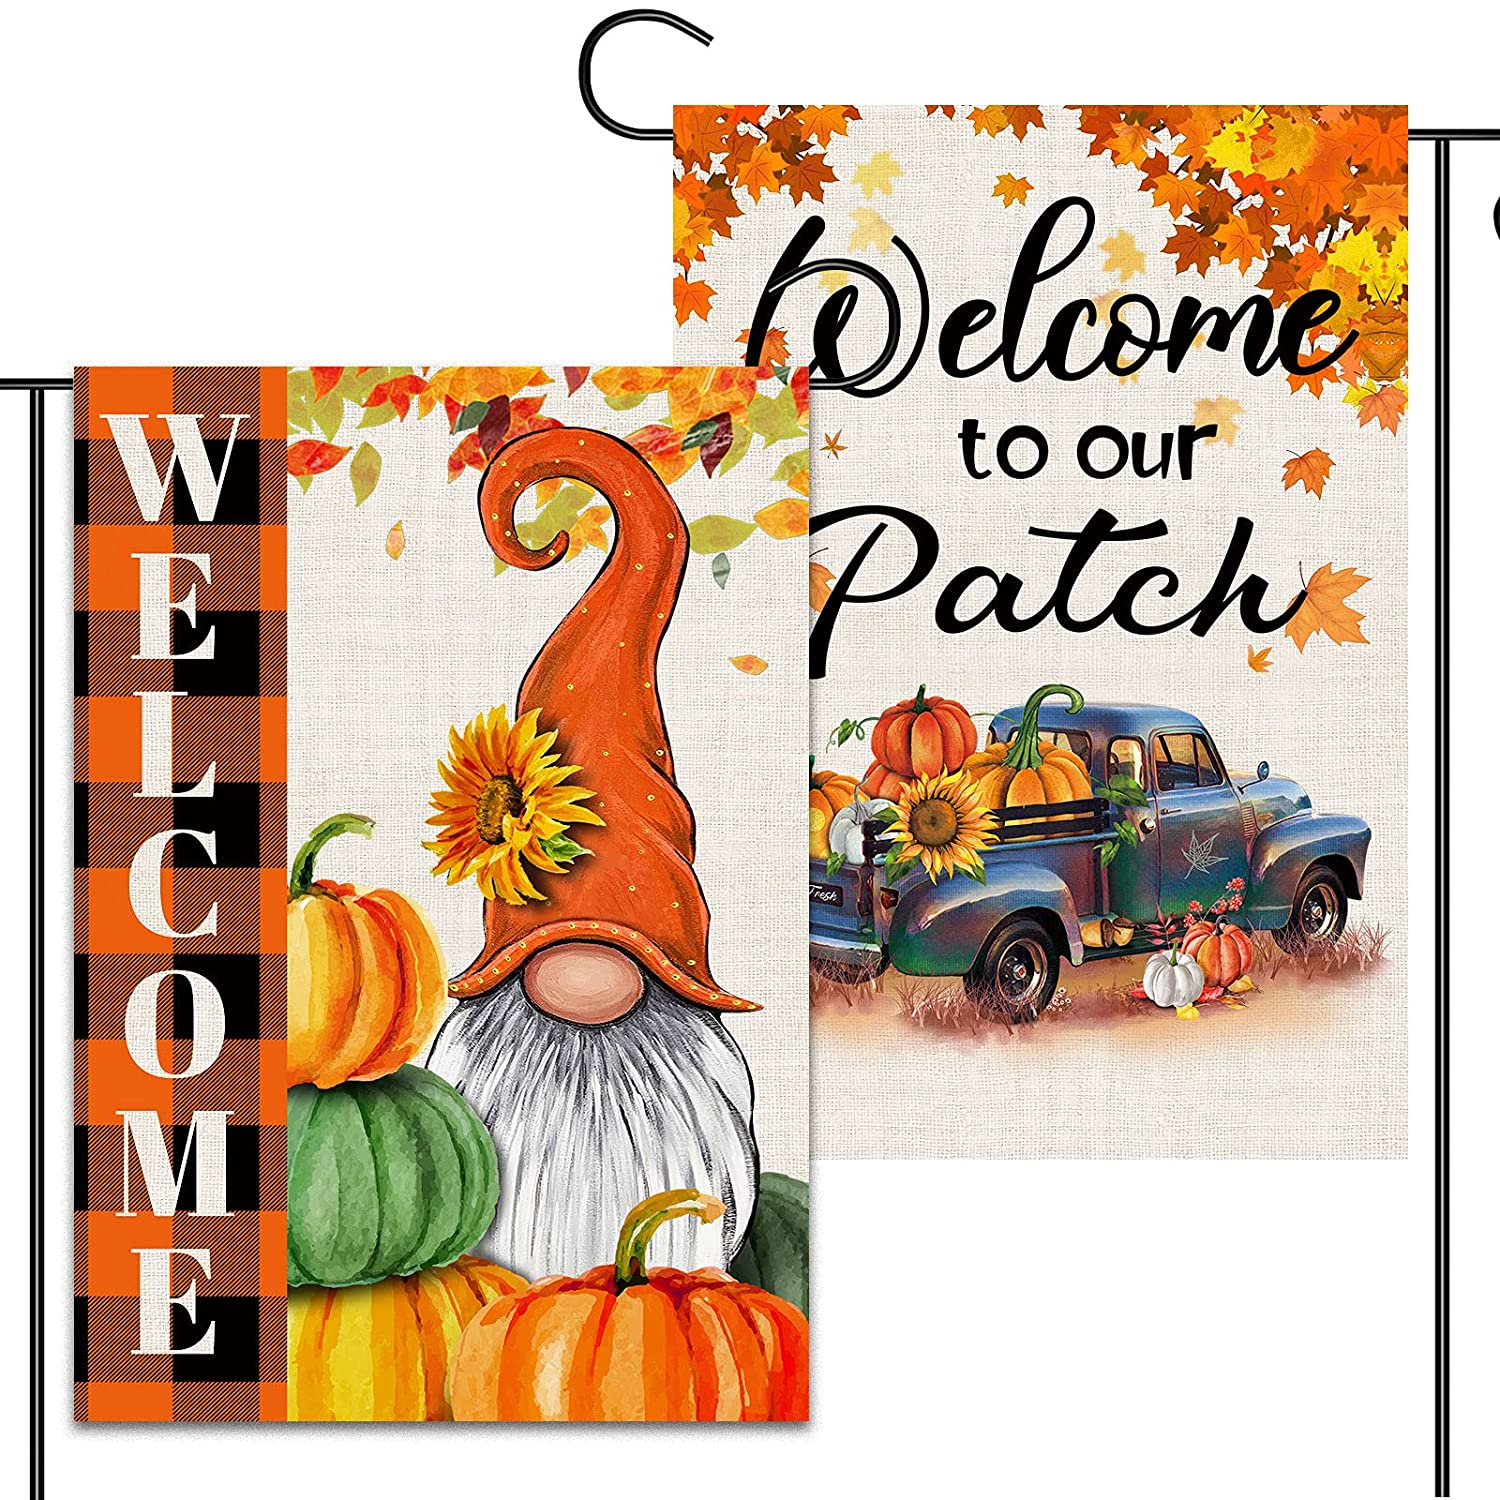 2 Pcs Harvest Fall Garden Flags 12x18 Double Sided, Burlap Pumpkin Truck And Buffalo Plaid Gnome Thanksgiving Garden Flags, Outdoor Yard Decors for Pumpkin Patch Welcome Sign